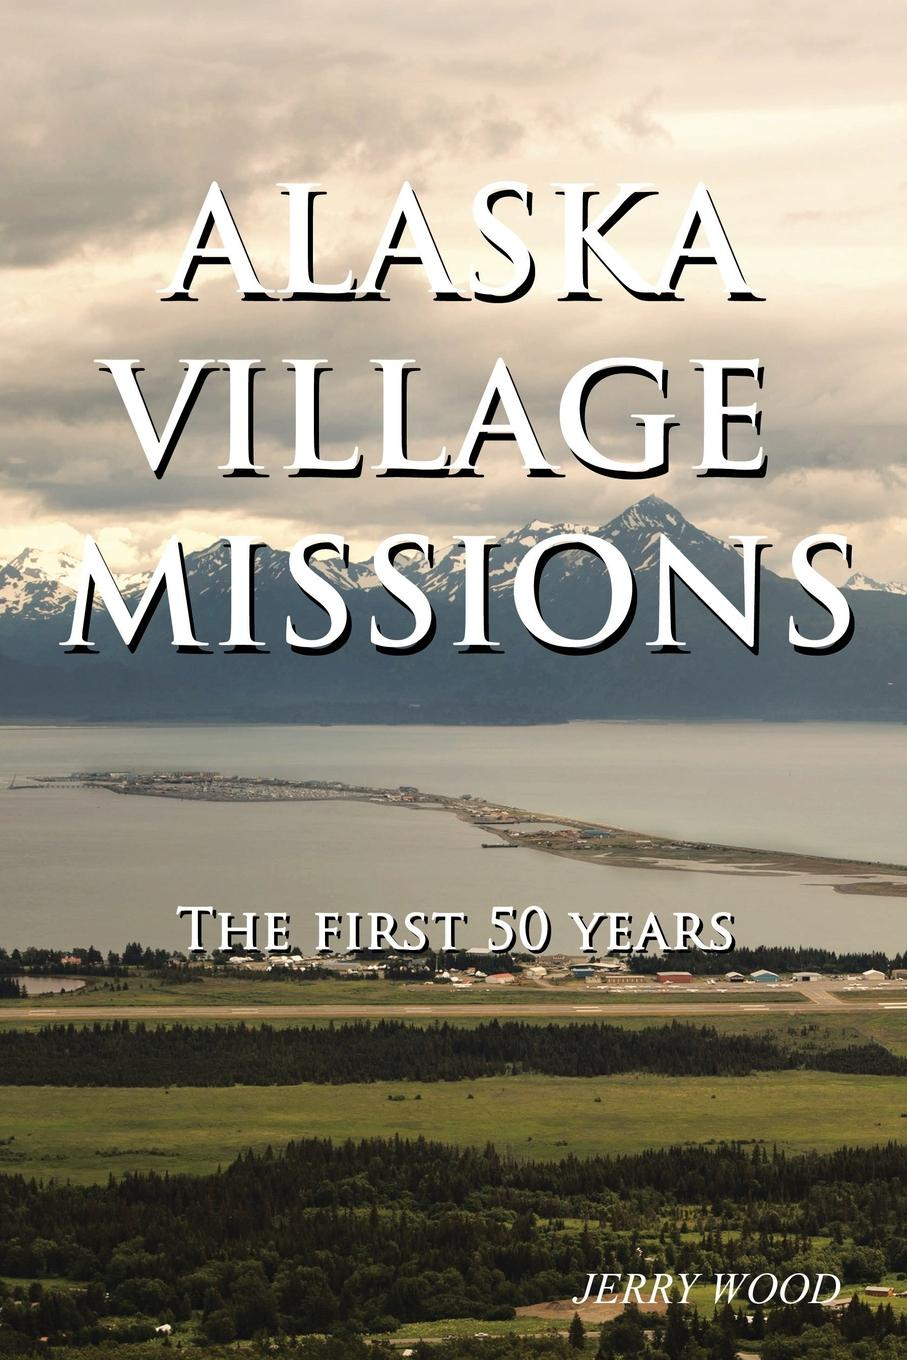 Jerry Wood Alaska Village Missions. The First 50 Years malcolm kemp extreme events robust portfolio construction in the presence of fat tails isbn 9780470976791